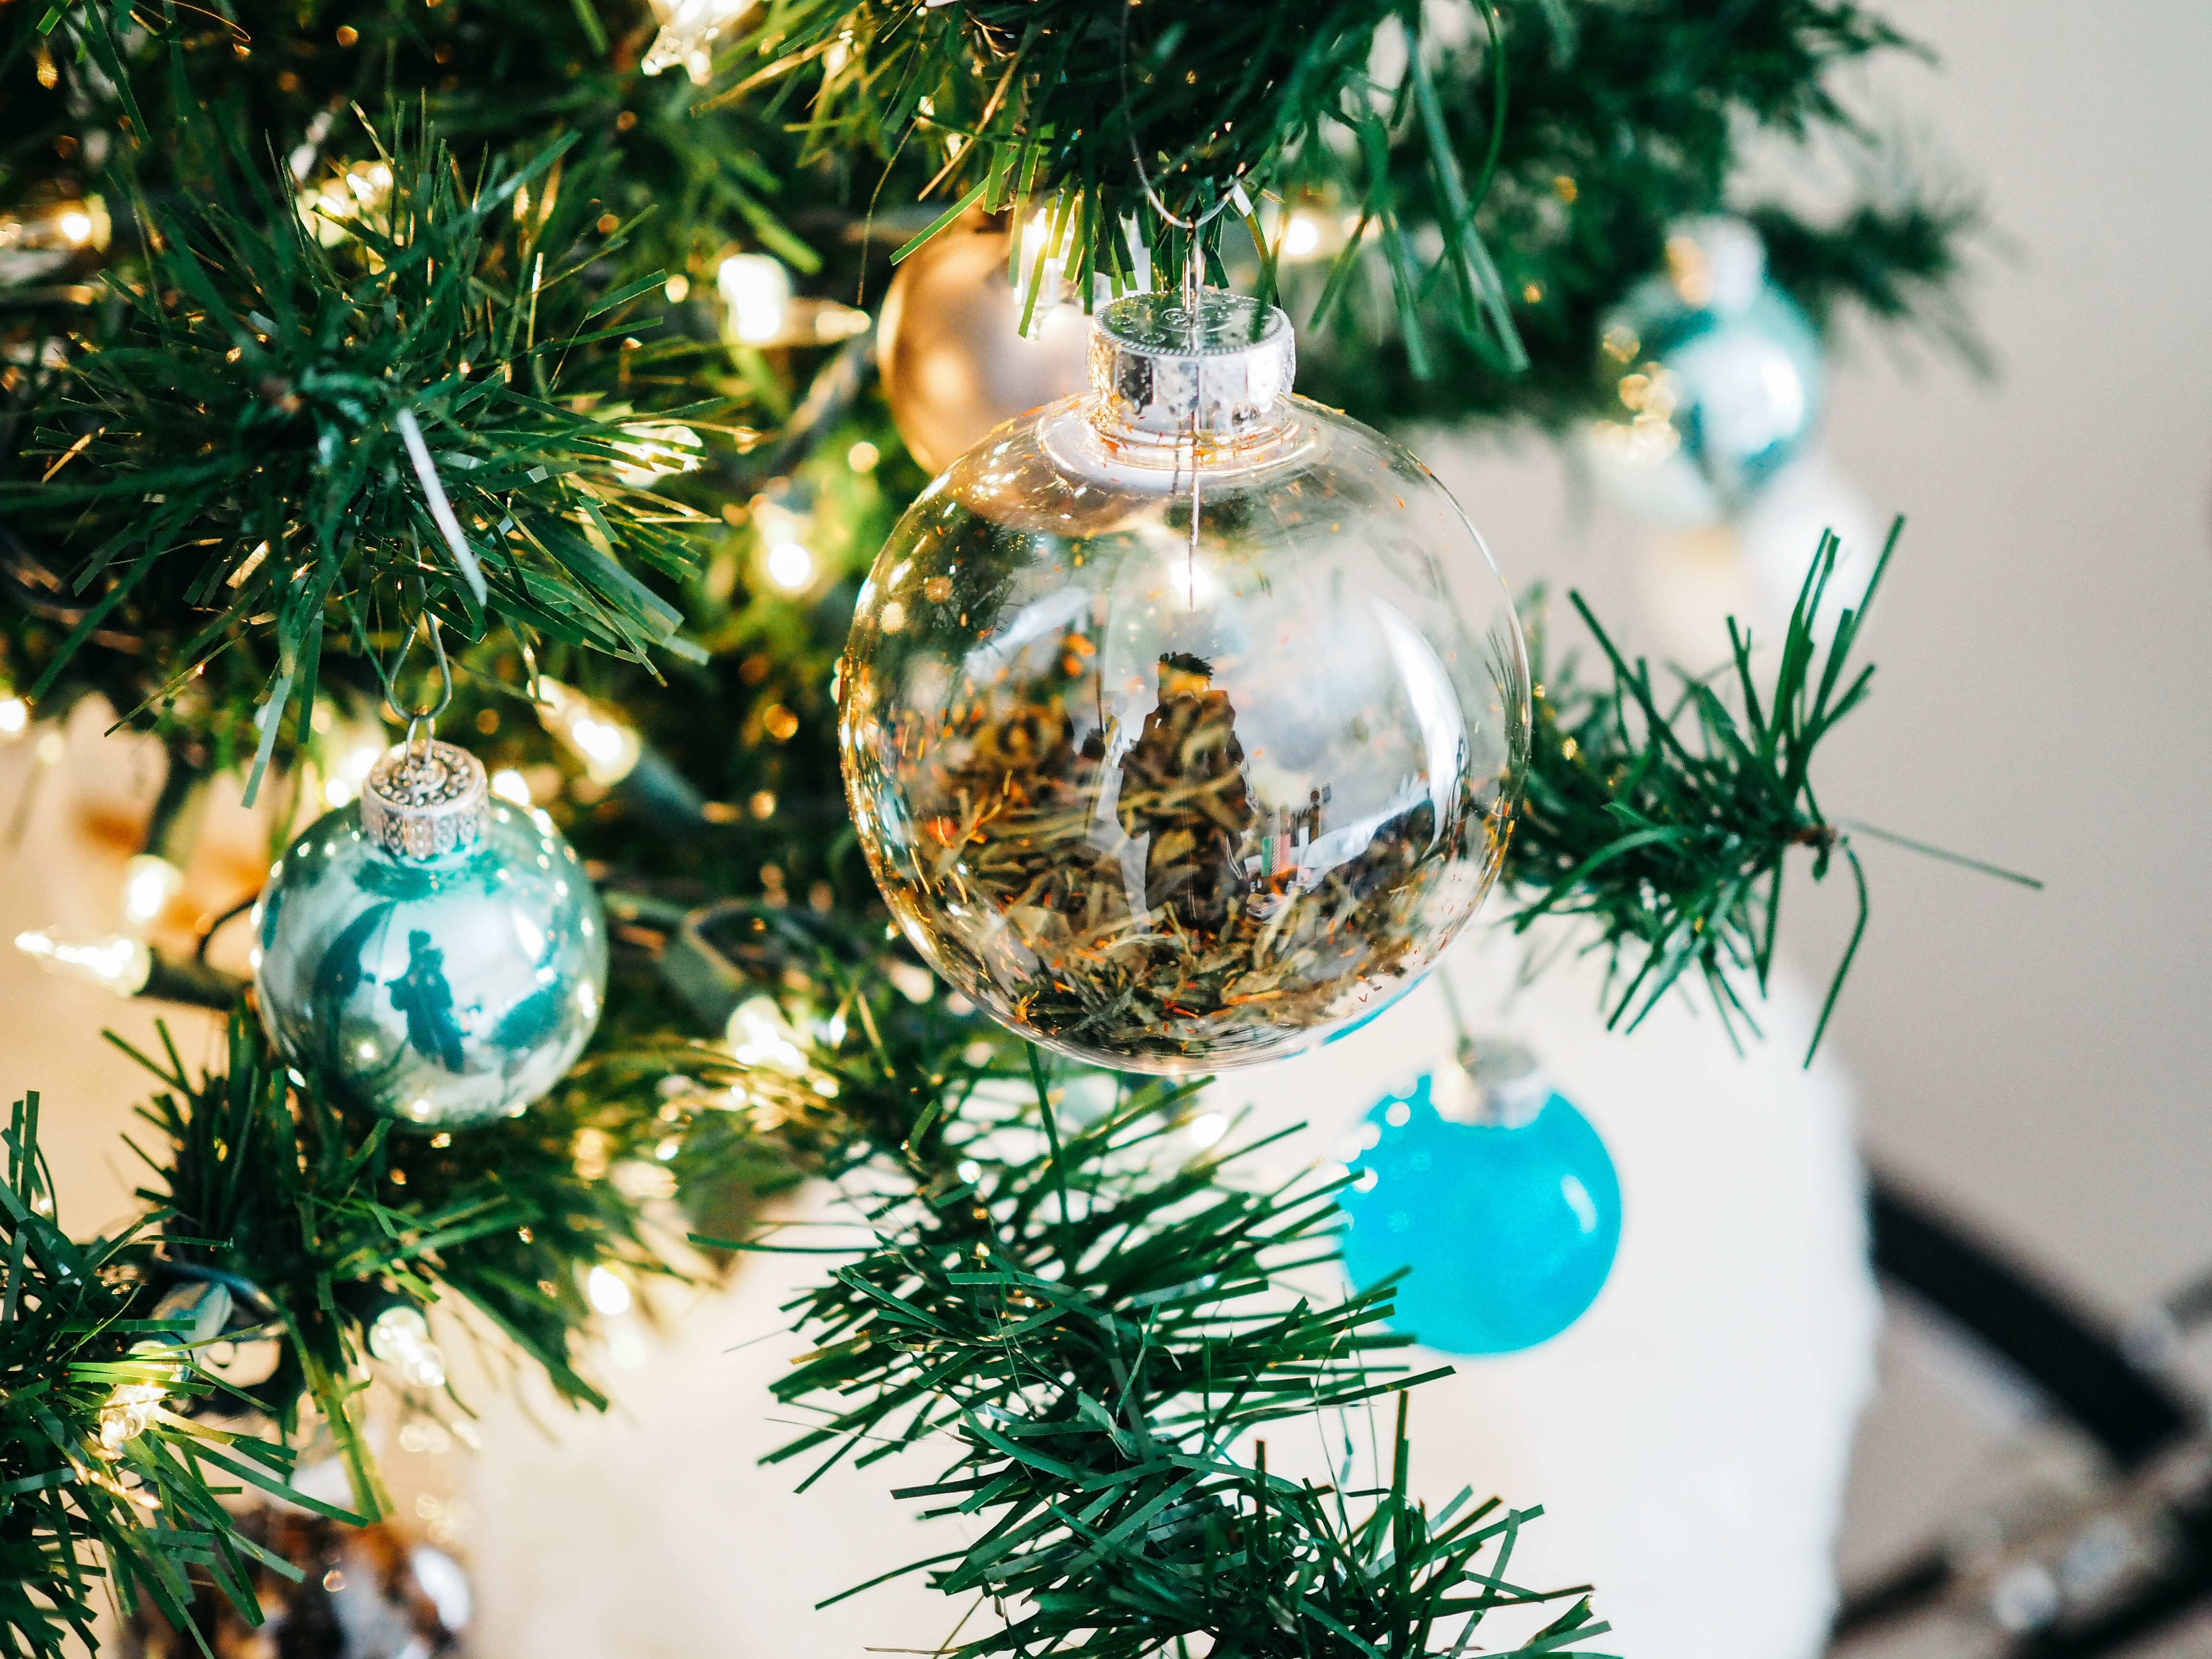 clear and teal glass baubles hanged on lighted Christmas tree